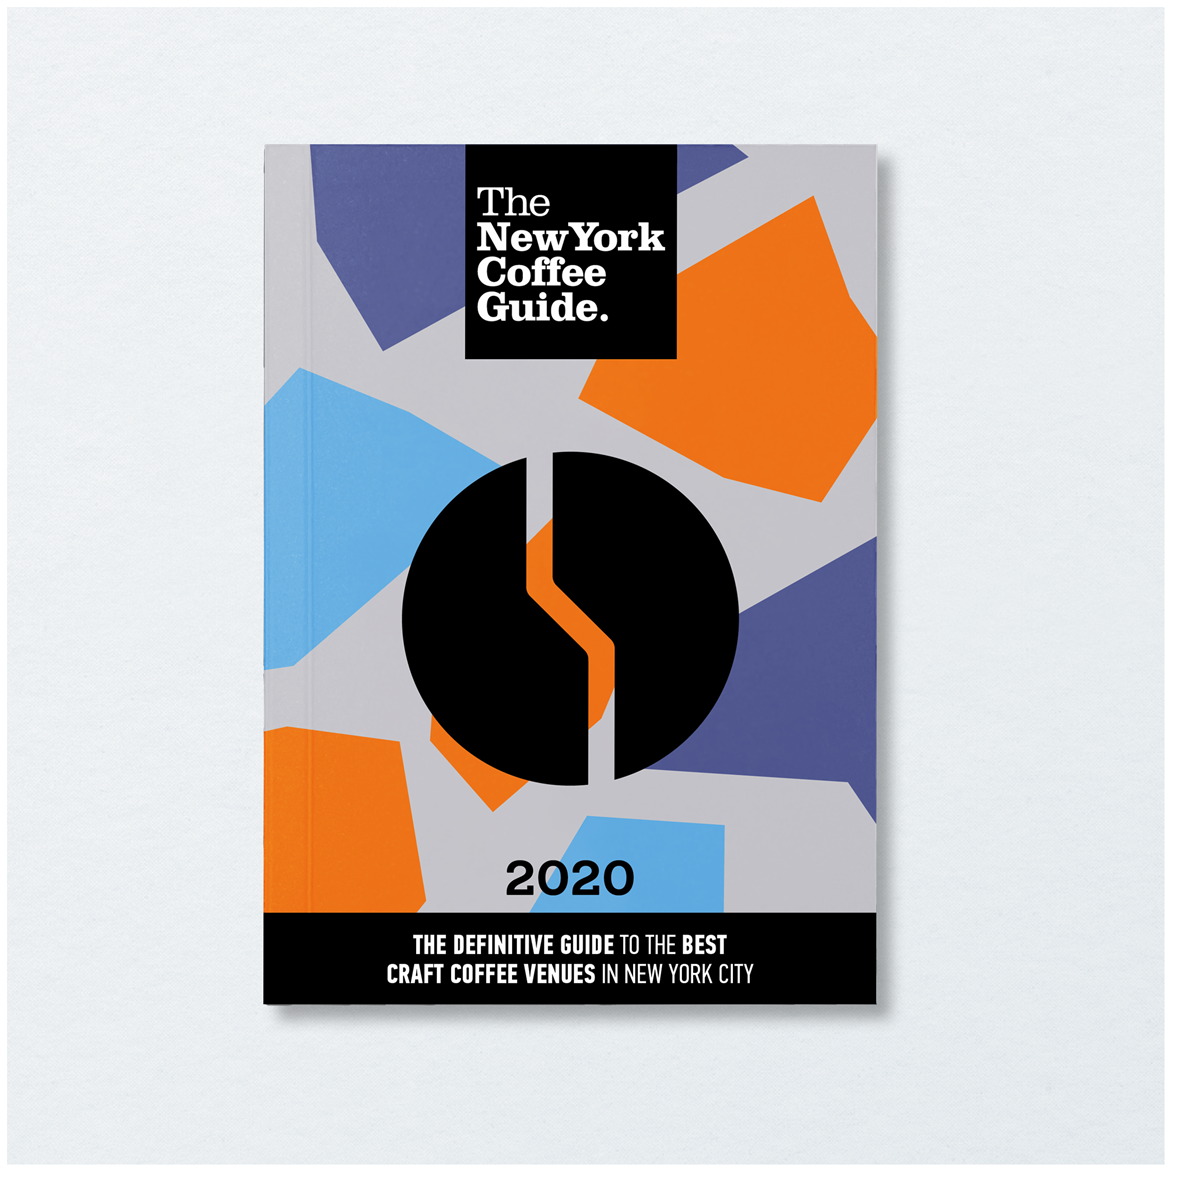 The New York Coffee Guide 2020